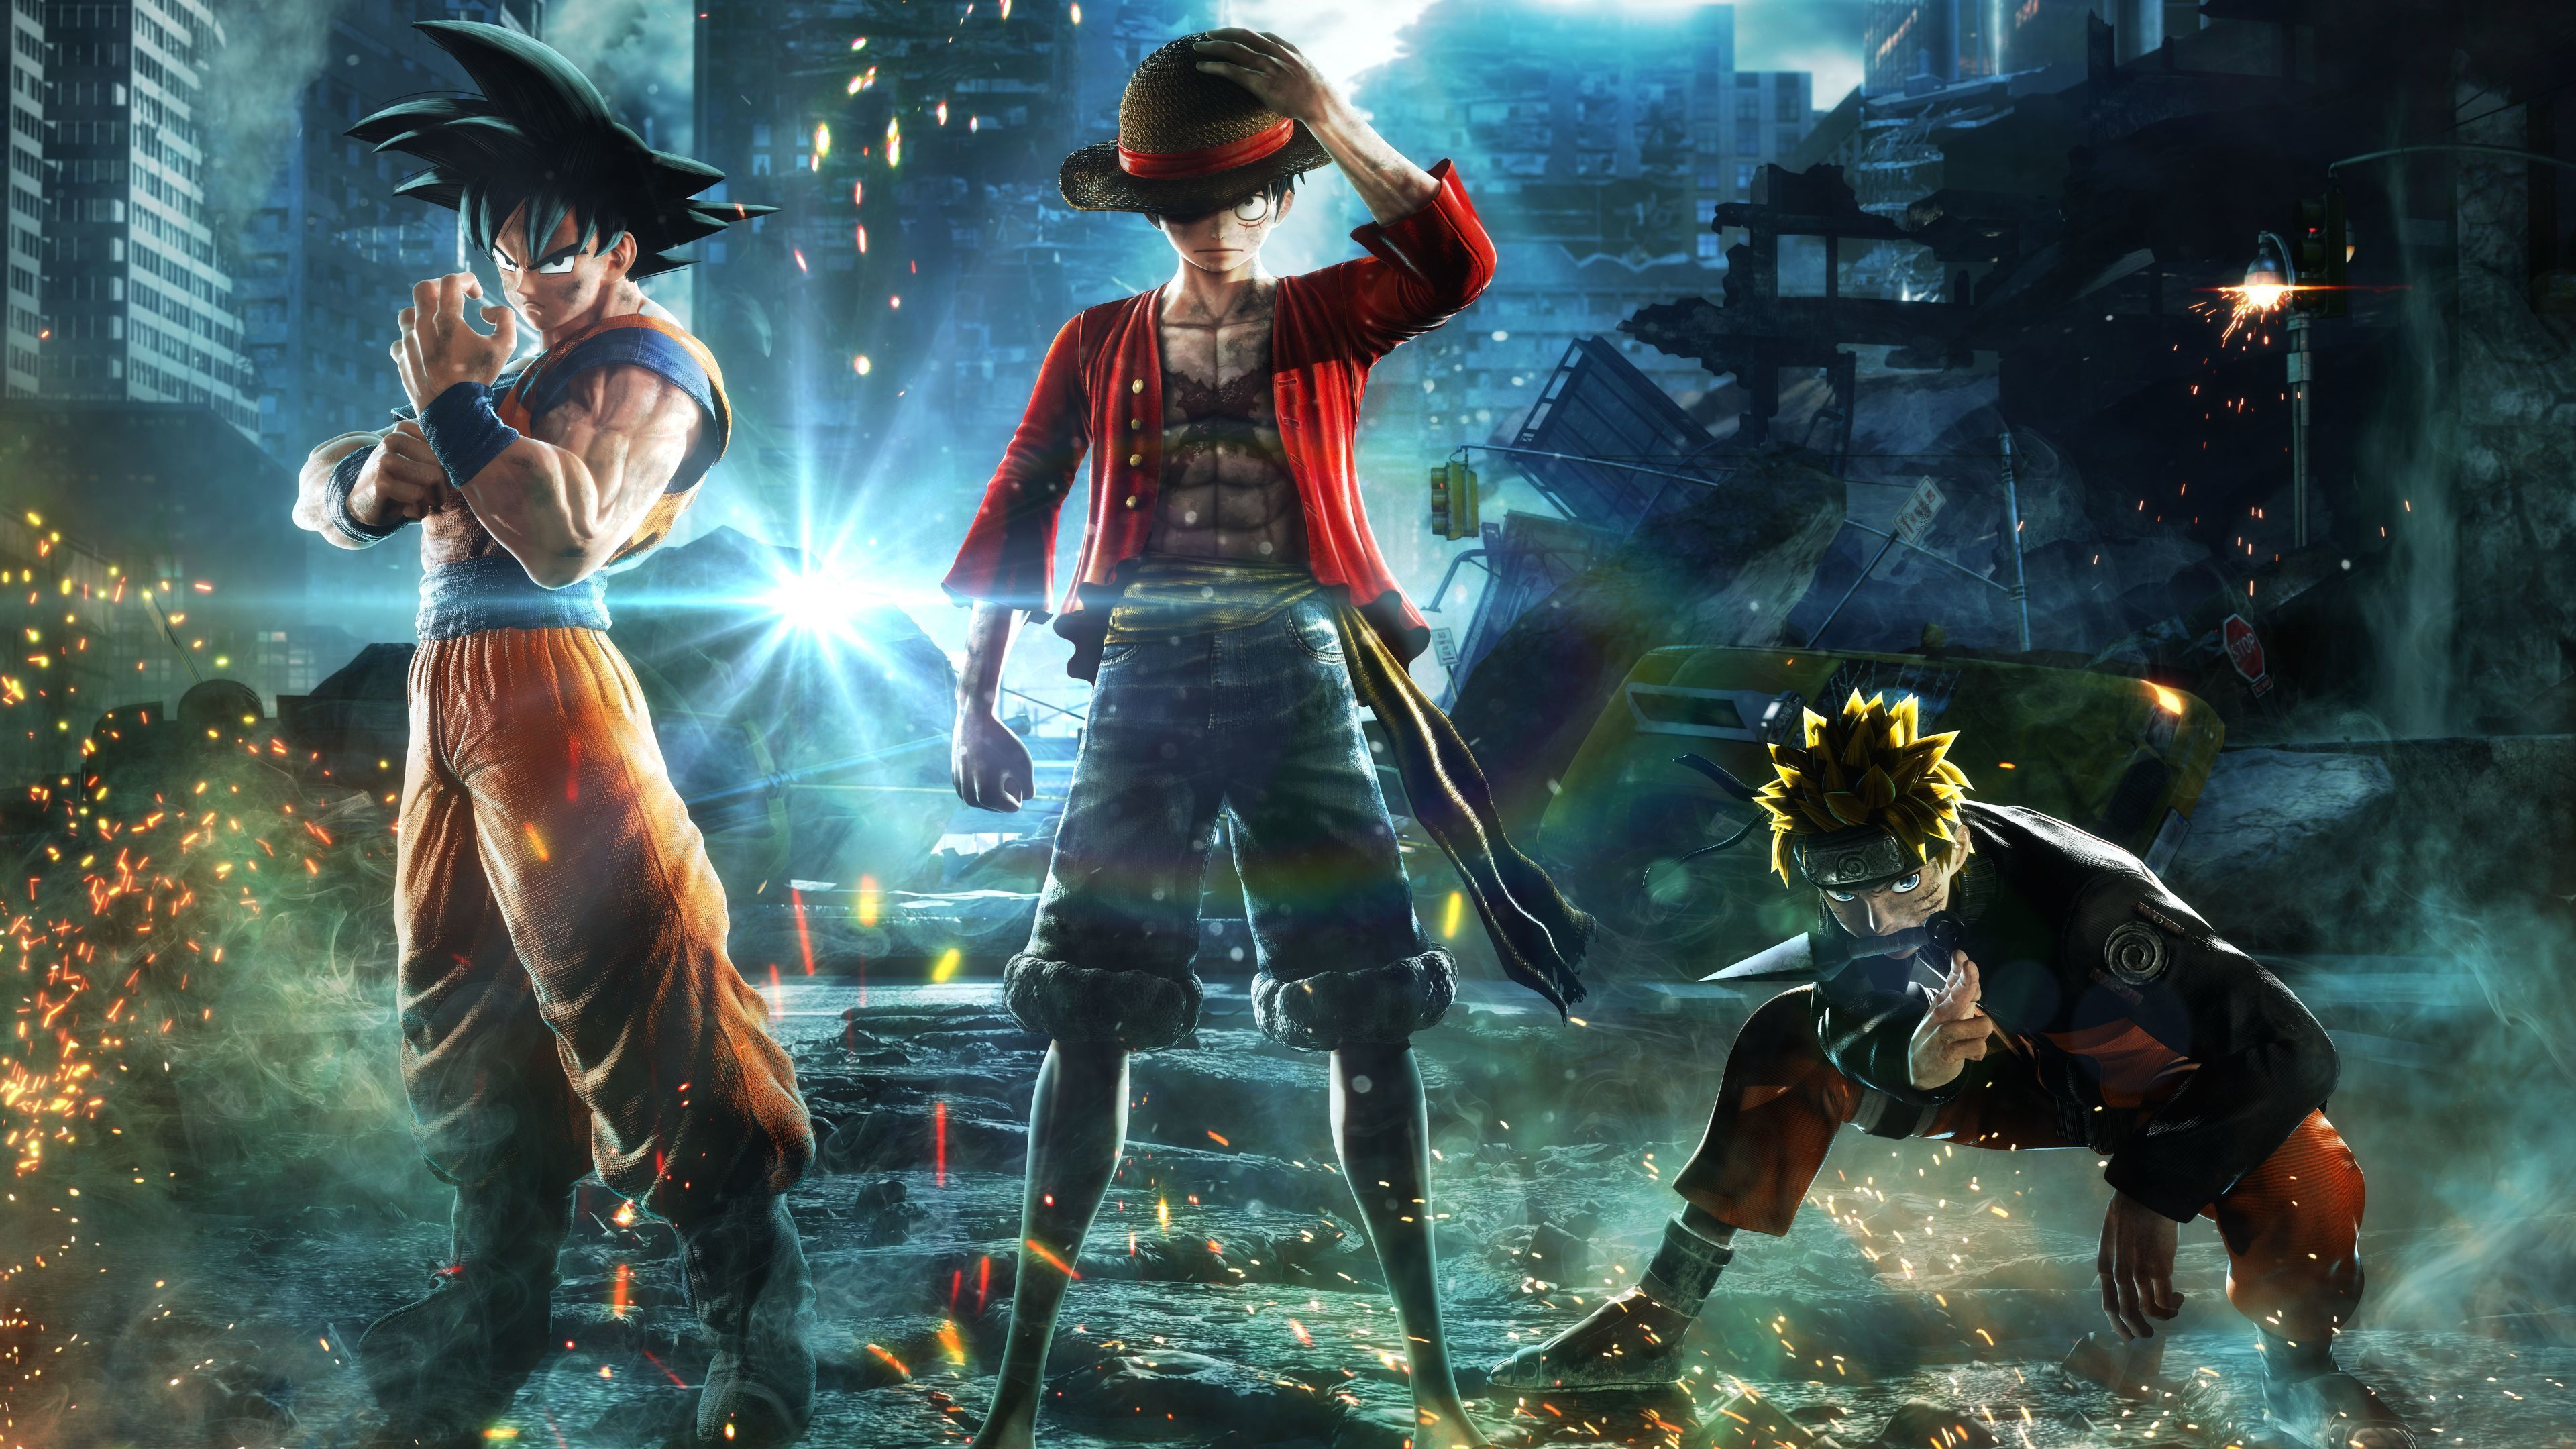 Goku Monkey D Luffy Naruto Jump Force 8k Naruto Wallpapers Monkey D Luffy Wallpapers Jump Force Wallpapers In 2020 Anime Characters Goku Wallpaper Naruto Wallpaper